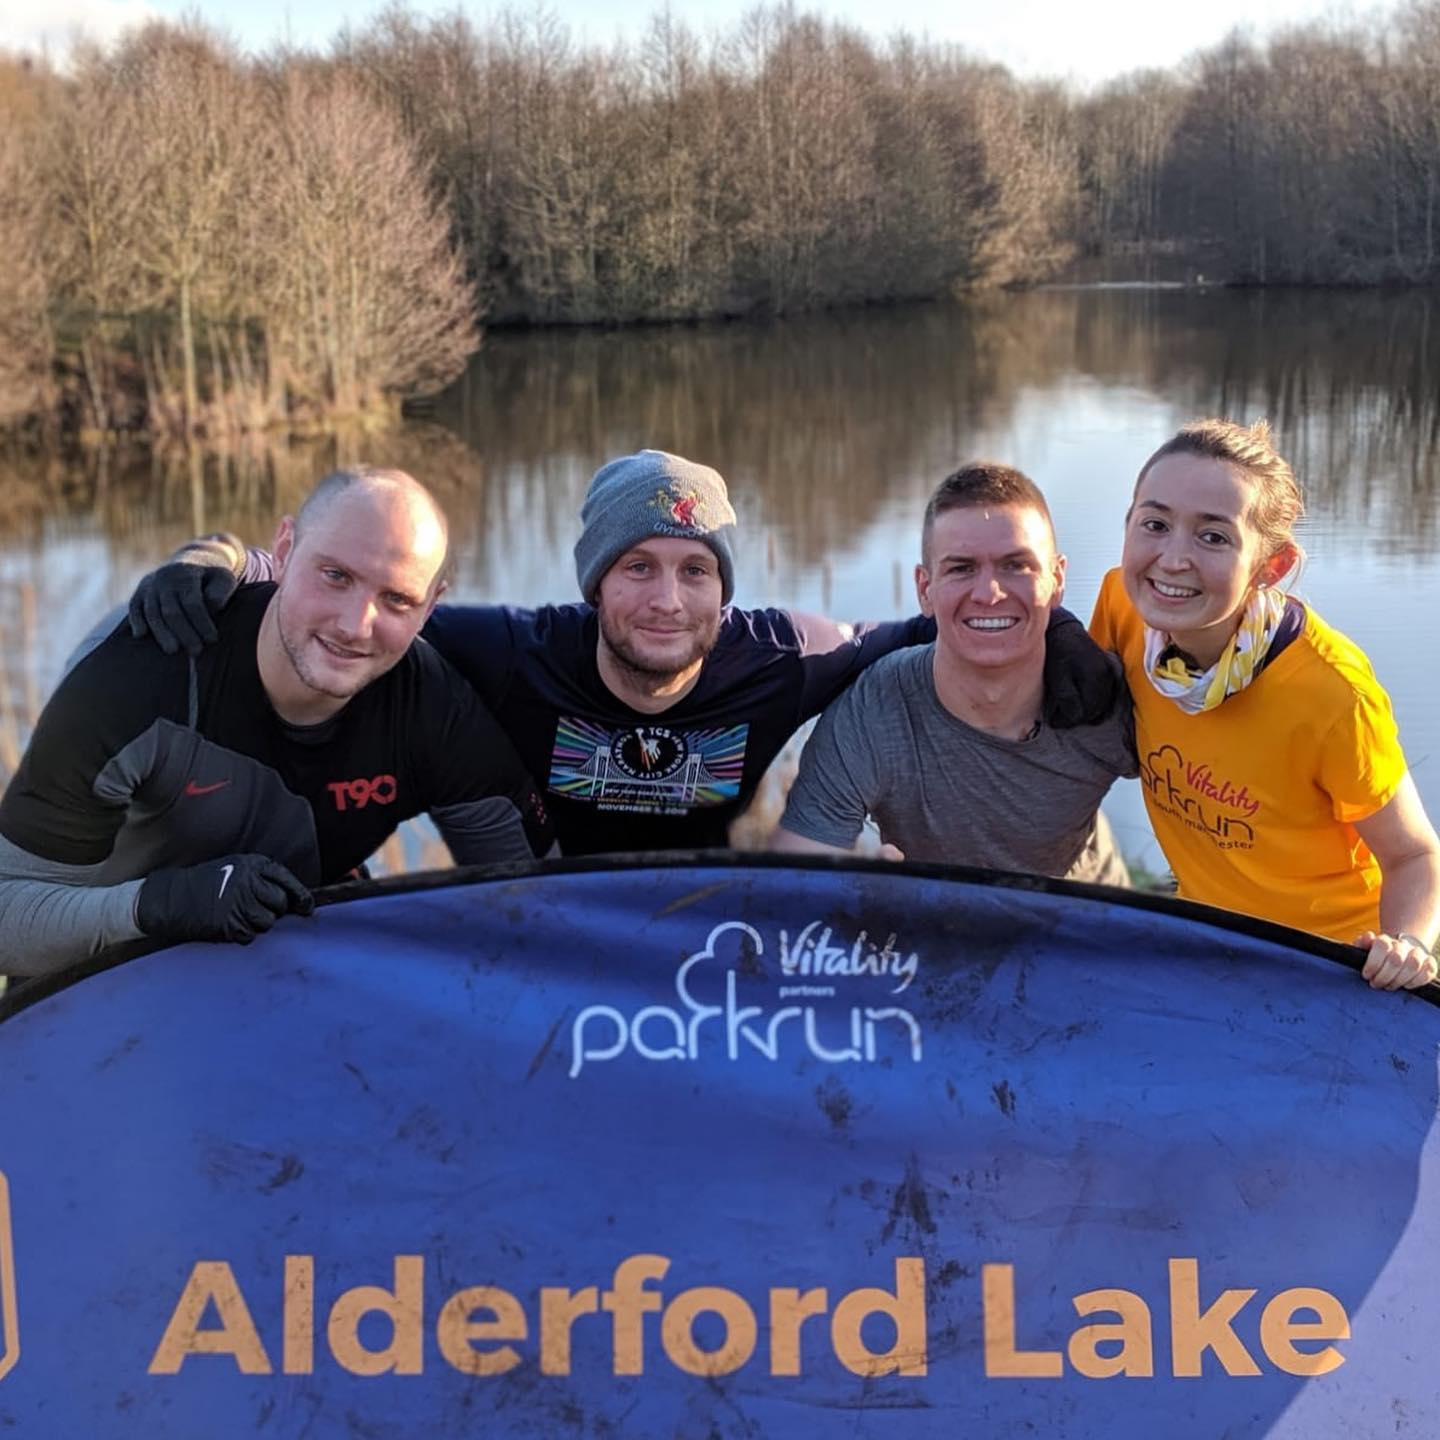 parkrun with family and friends at @alderford_lake @parkrunuk #iwon #loveparkrun #parkruntourists #parkruntourism #parkrun #lake #whitchurch #running #runners #alderfordlake